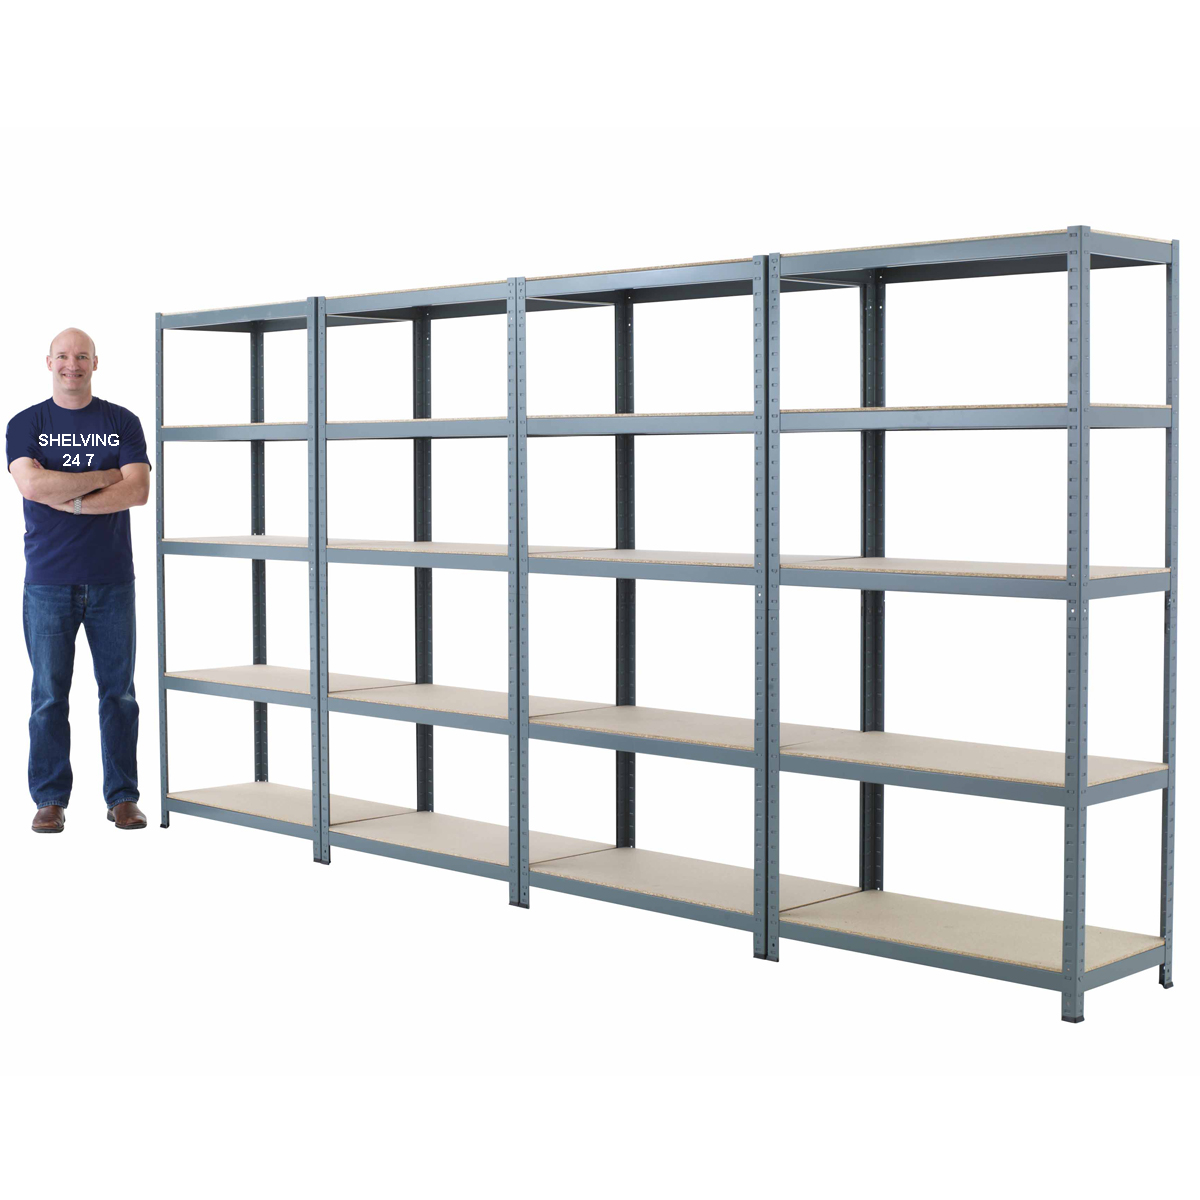 New 5 Shelf Metal Shelving 71 Hx36 Wx24 D Steel Garage